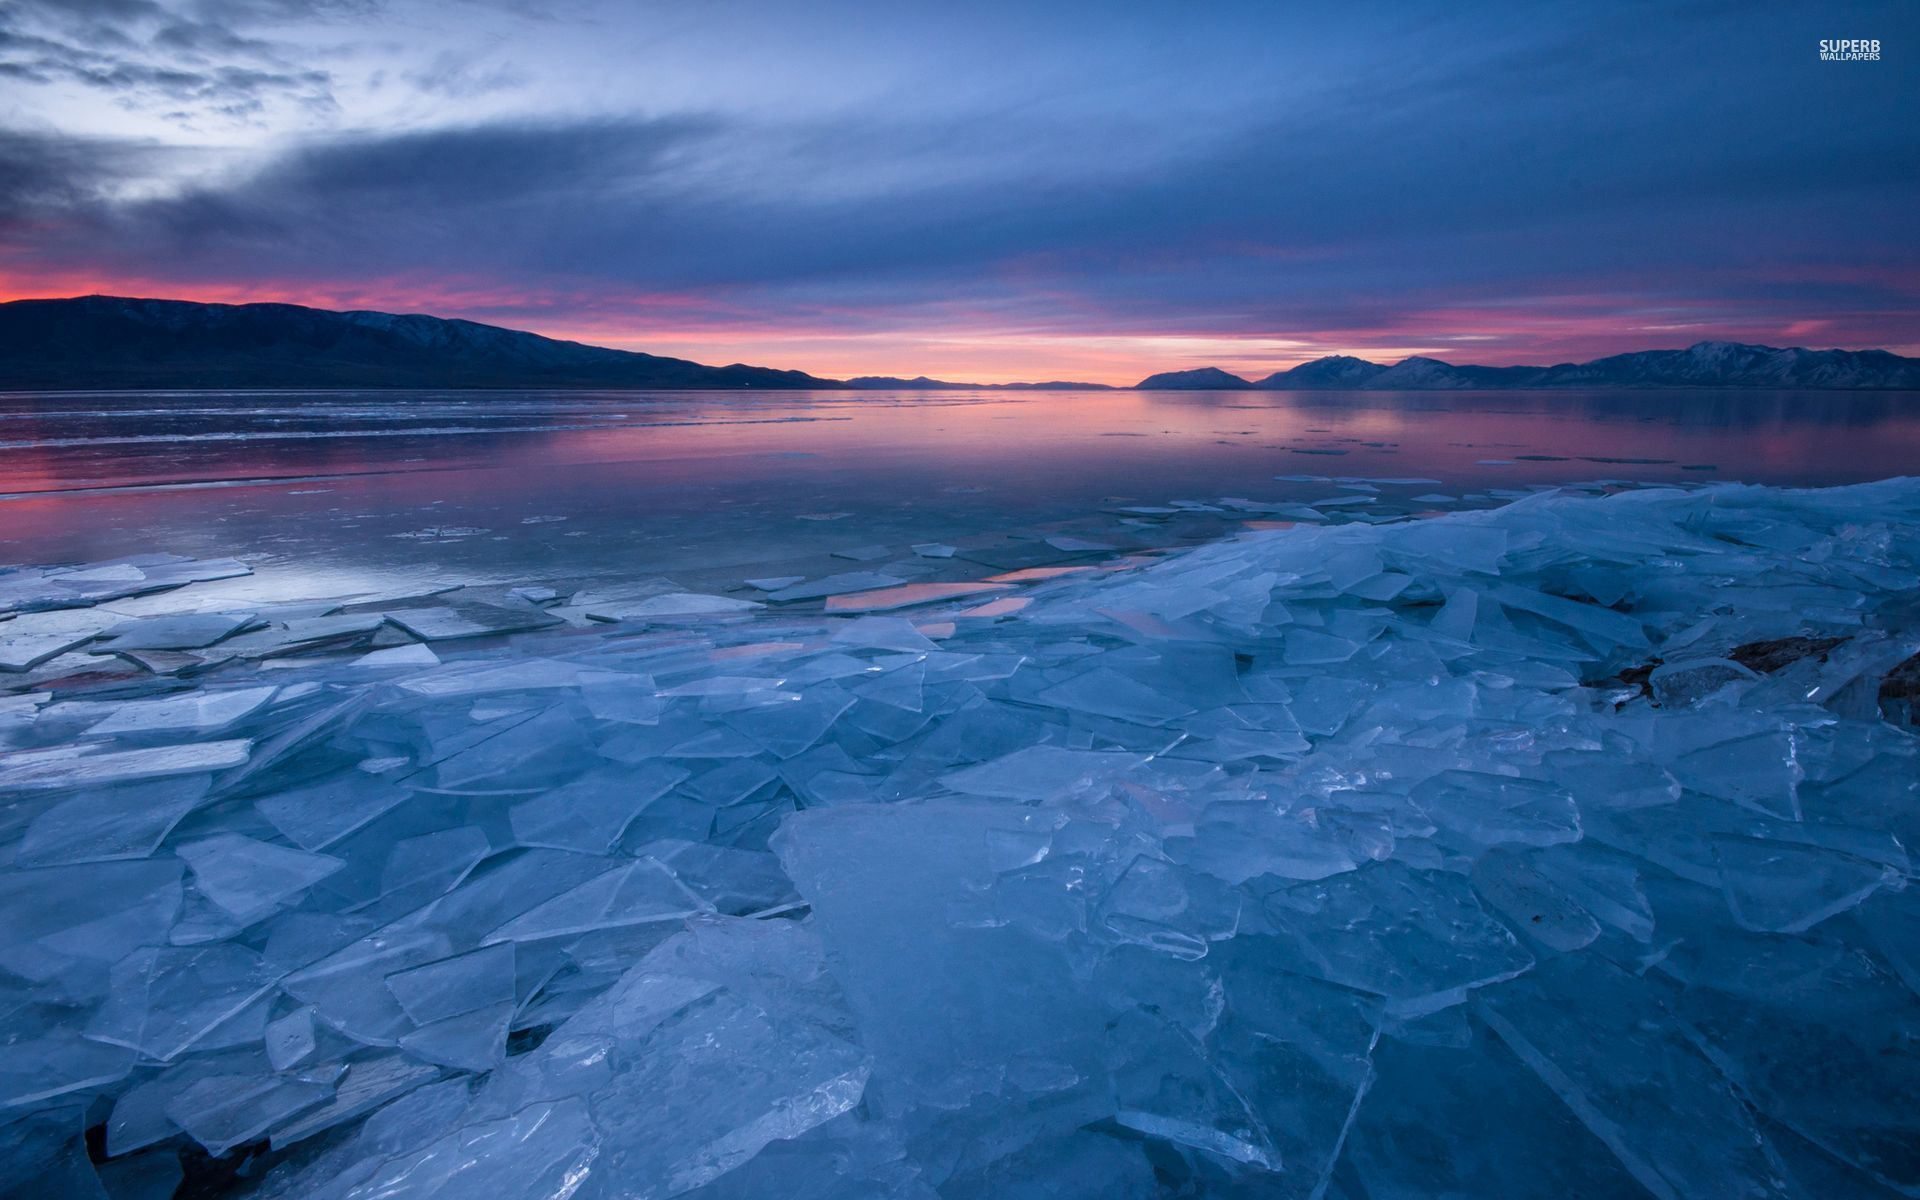 Frozen Animated Wallpaper Icy Lake Hills Pink Sunset Wallpapers Icy Lake Hills